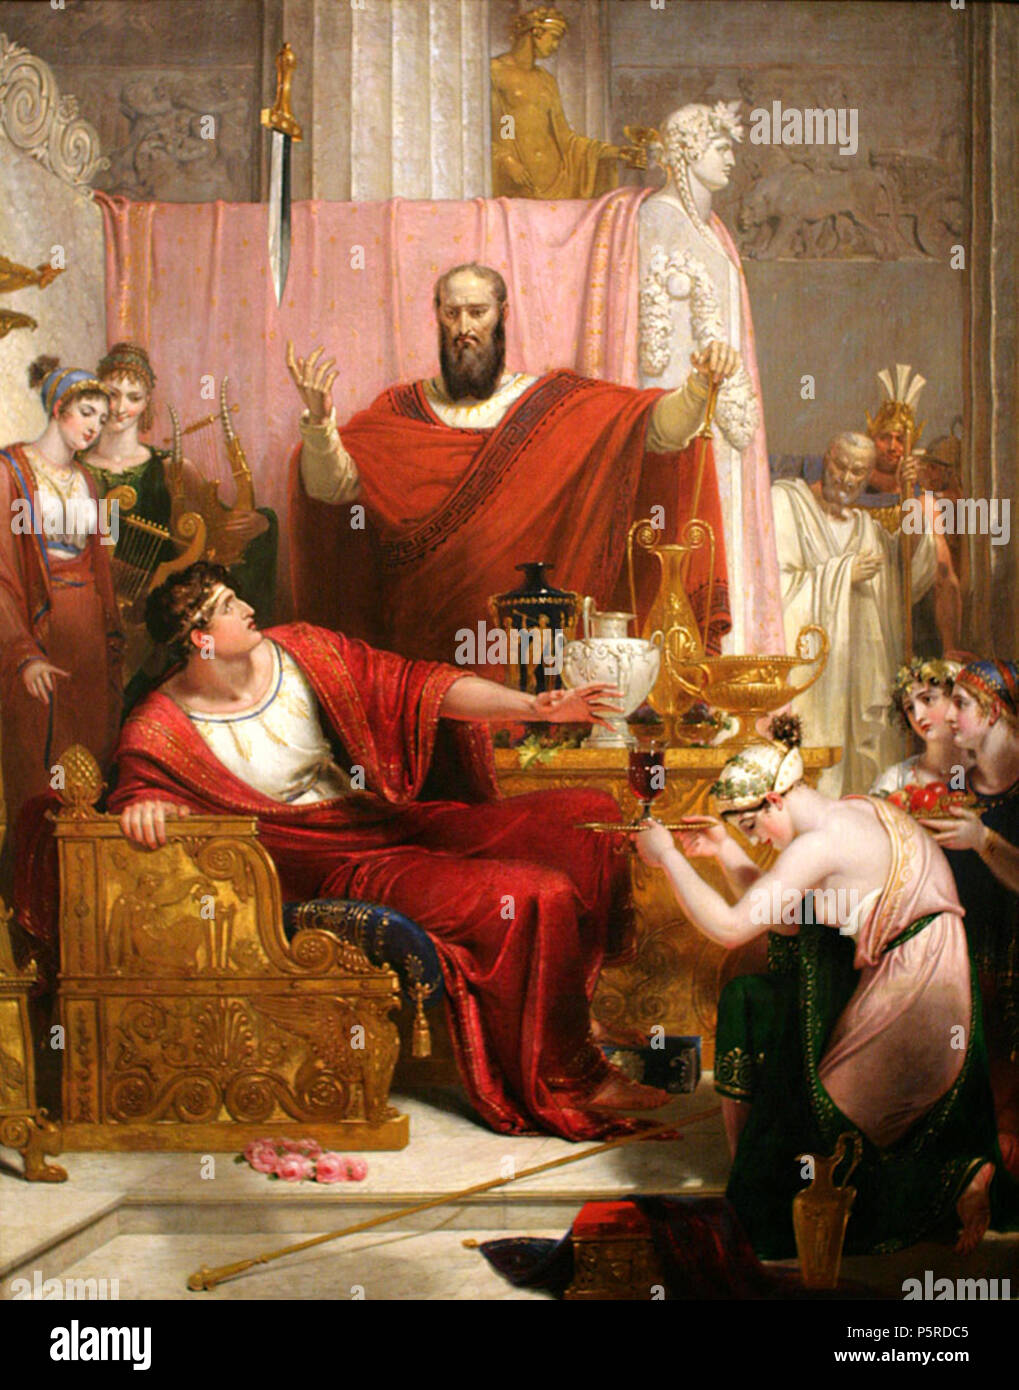 N/A. Sword of Damocles, 1812, oil painting on canvas. Dimensions: 130.0 × 103.0 cm (painting). 1812 (painting), 2008-01-20 (photograph).    Richard Westall (1765–1836)   Description English painter and illustrator  Date of birth/death 2 January 1765 4 December 1836  Location of birth/death Norwich, England London  Work period 1784–1836  Work location London (1779–1826)  Authority control  : Q3109174 VIAF:71662547 ISNI:0000 0000 8393 1177 ULAN:500012476 LCCN:n84229908 NLA:35754047 WorldCat 408 Damocles-WestallPC20080120-8842A Stock Photo